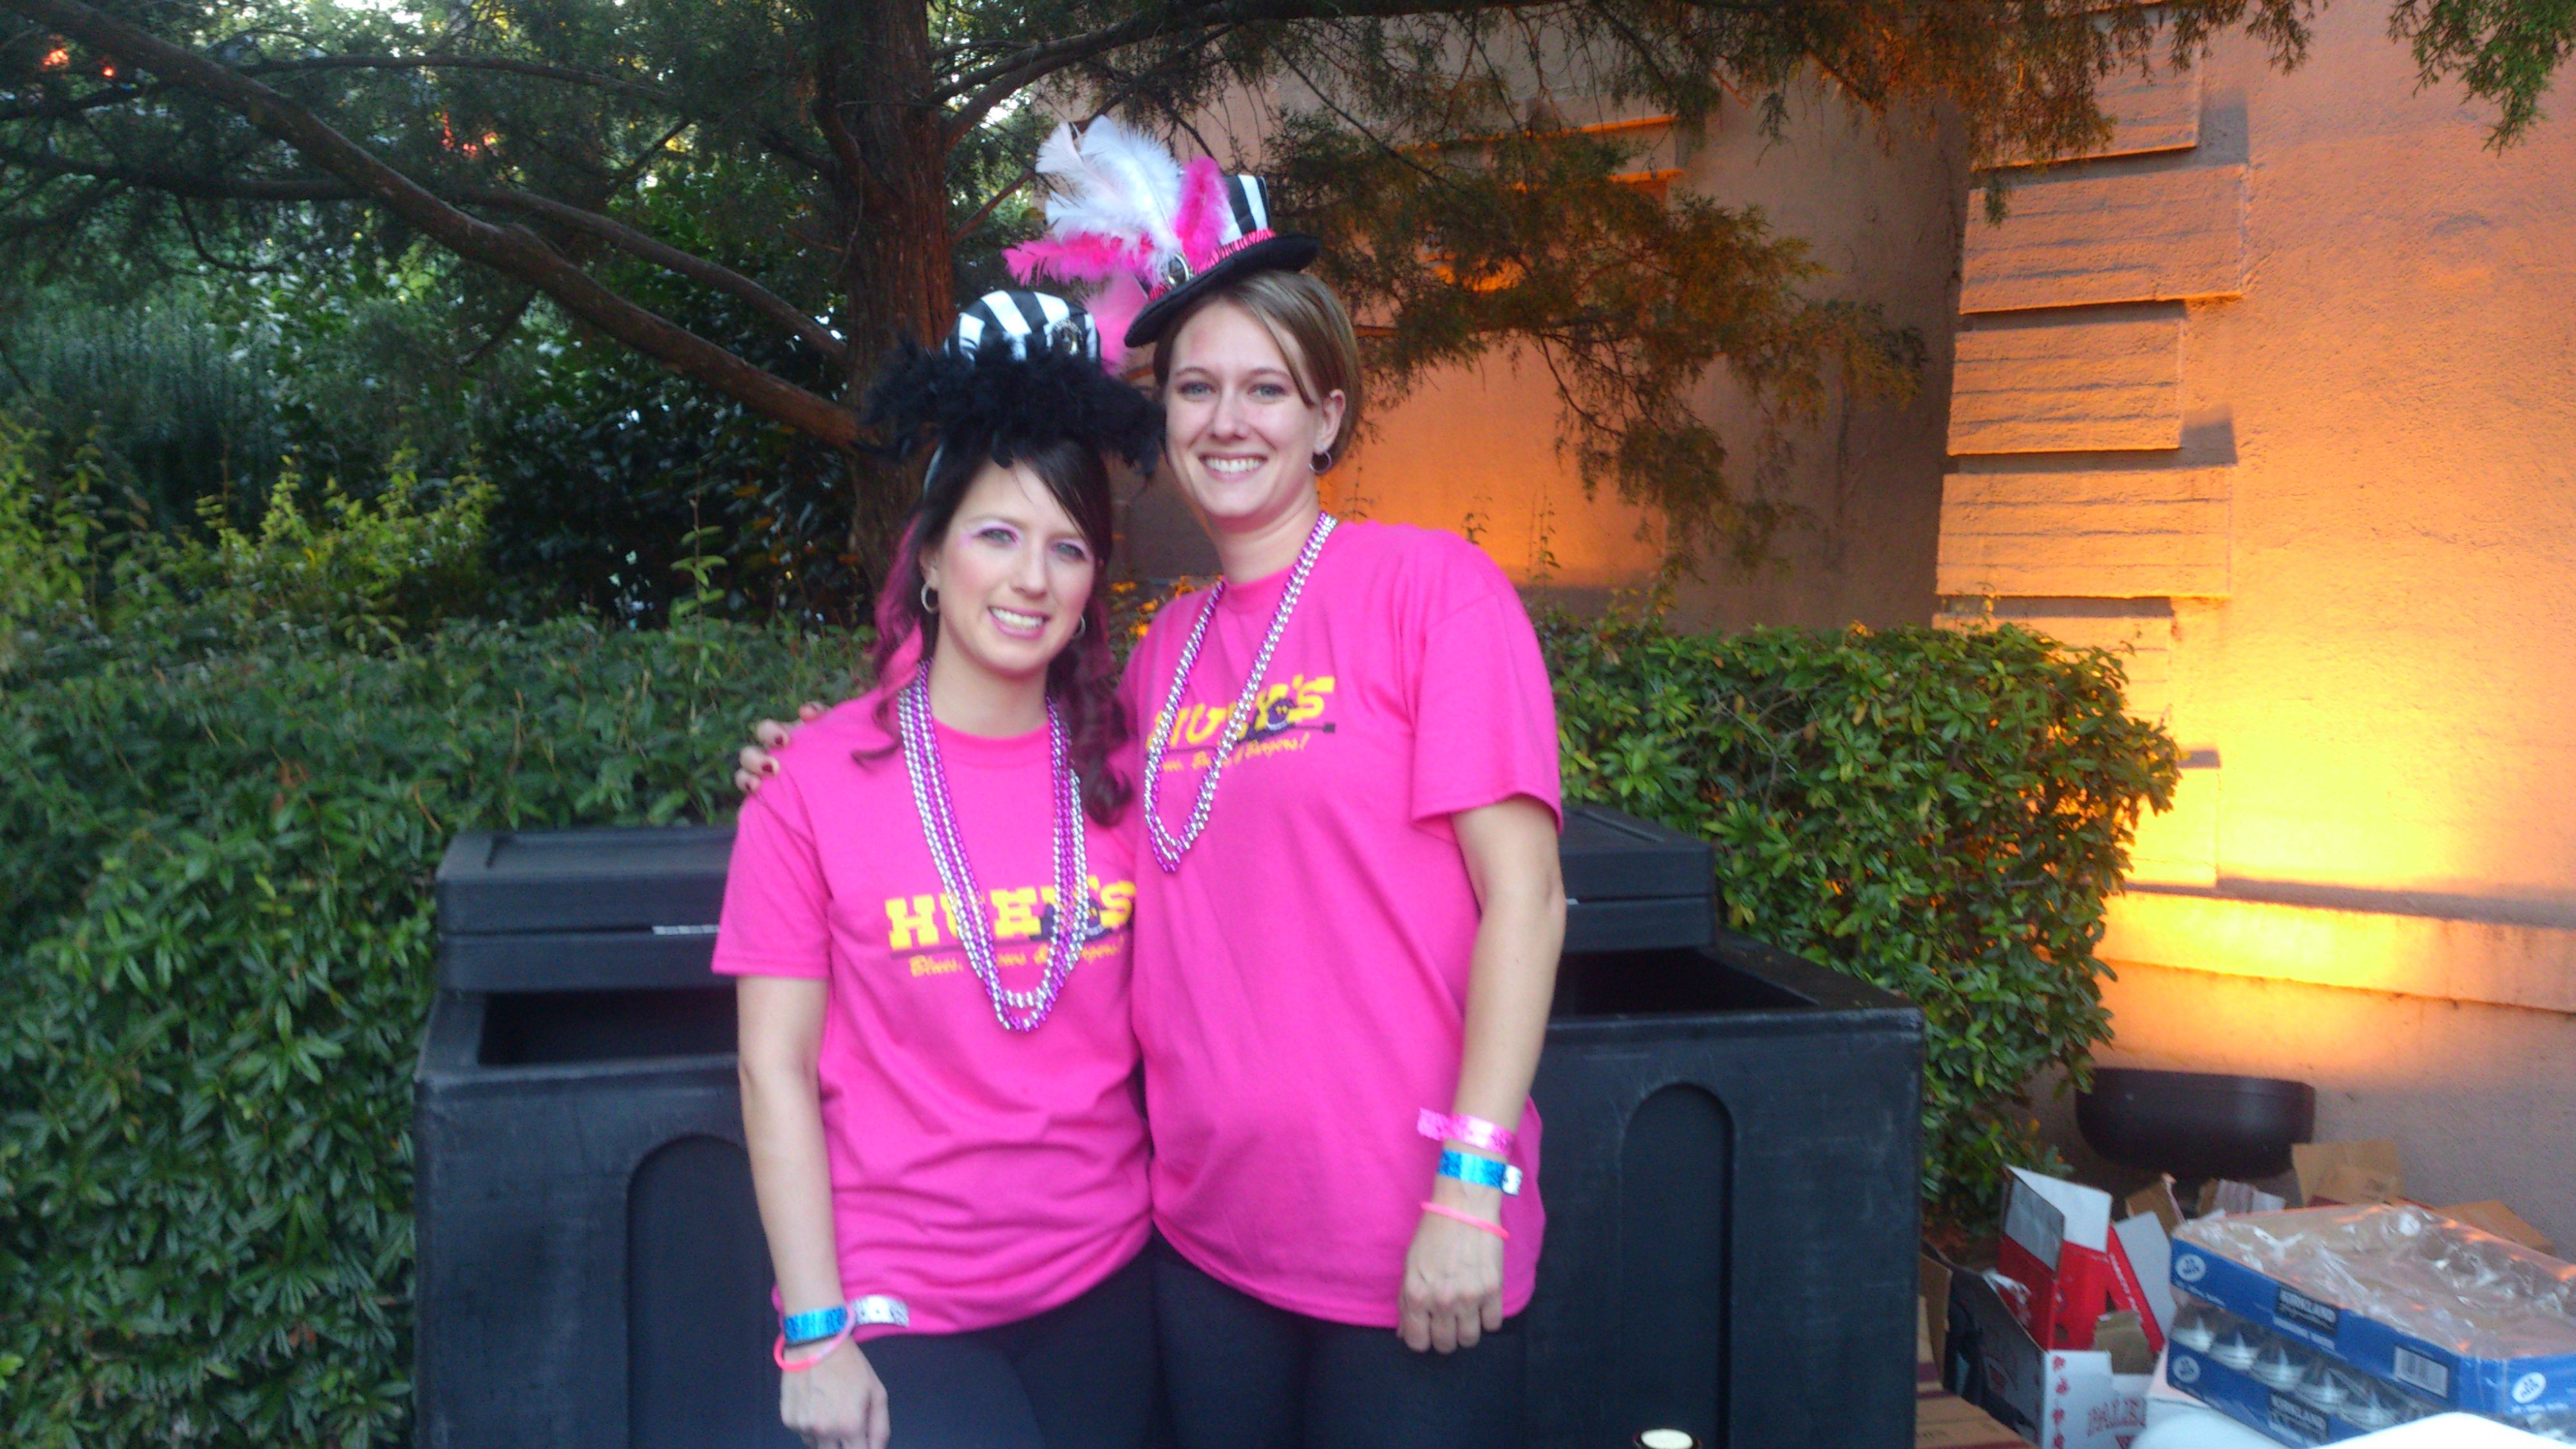 Our awesome volunteers for Bet Against Breast Cancer, benefiting Wings Cancer Foundation on Saturday!